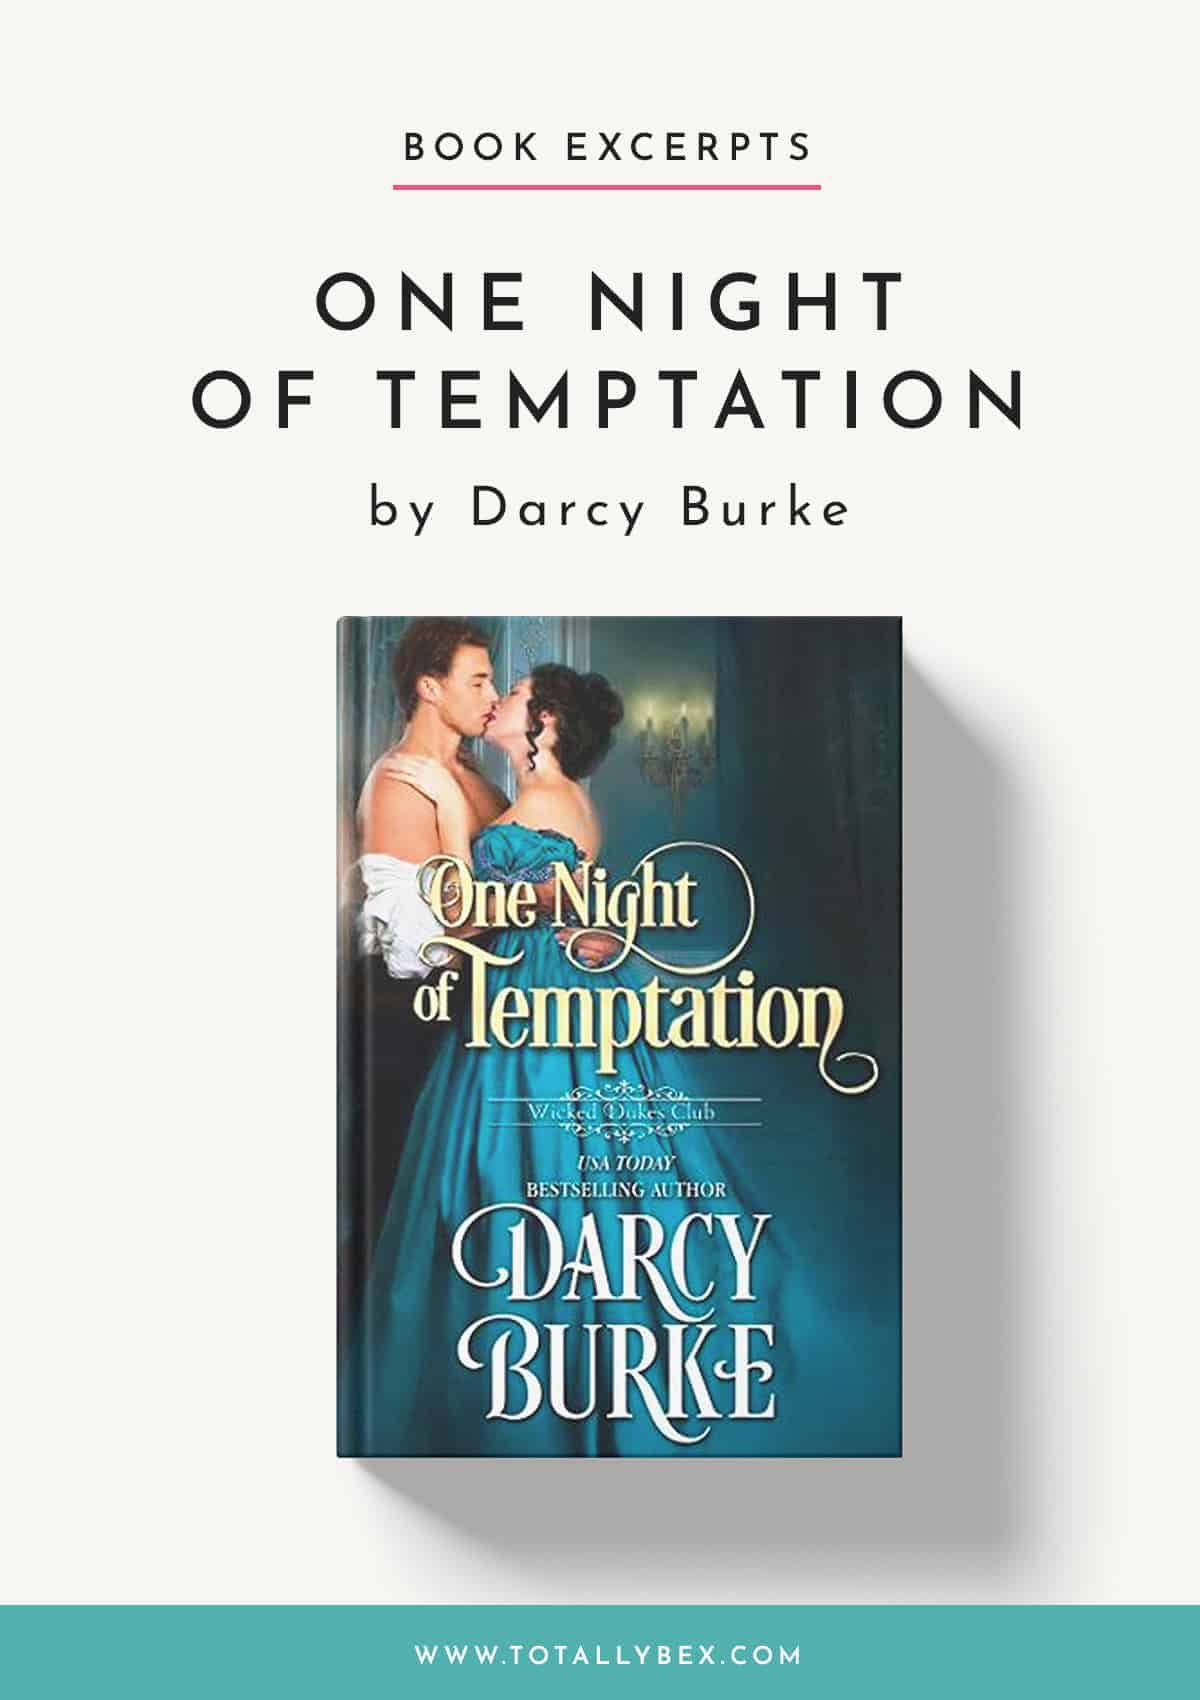 One Night of Temptation by Darcy Burke-Excerpt